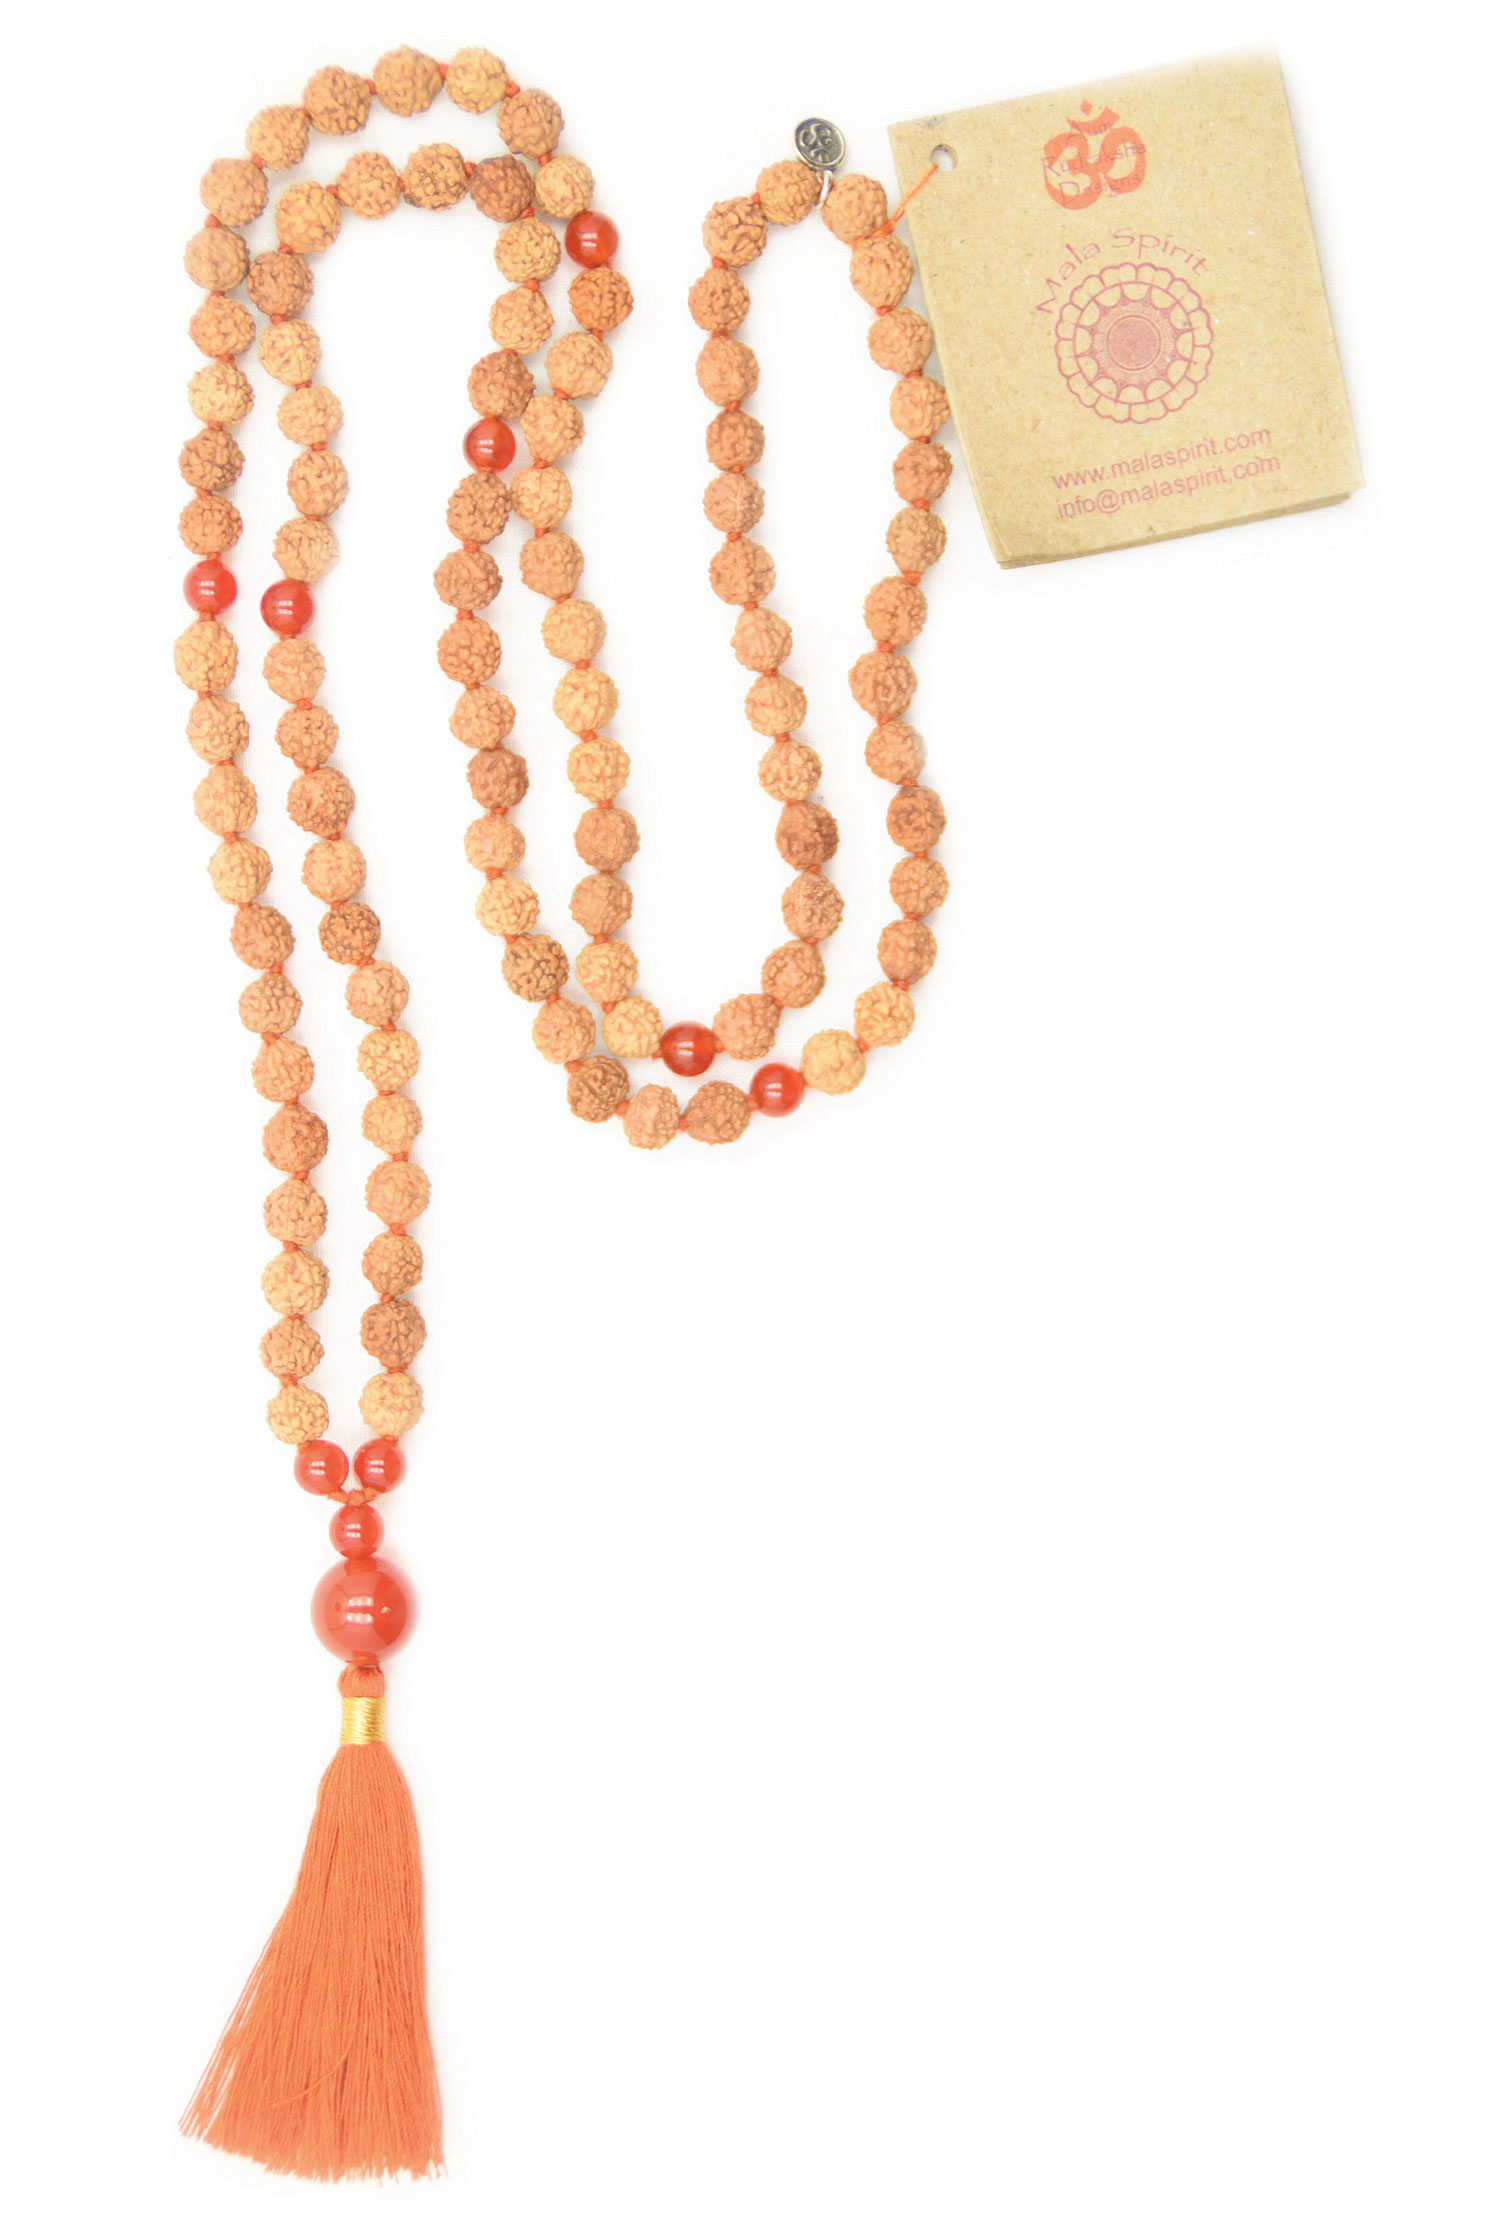 Courage mala ketting